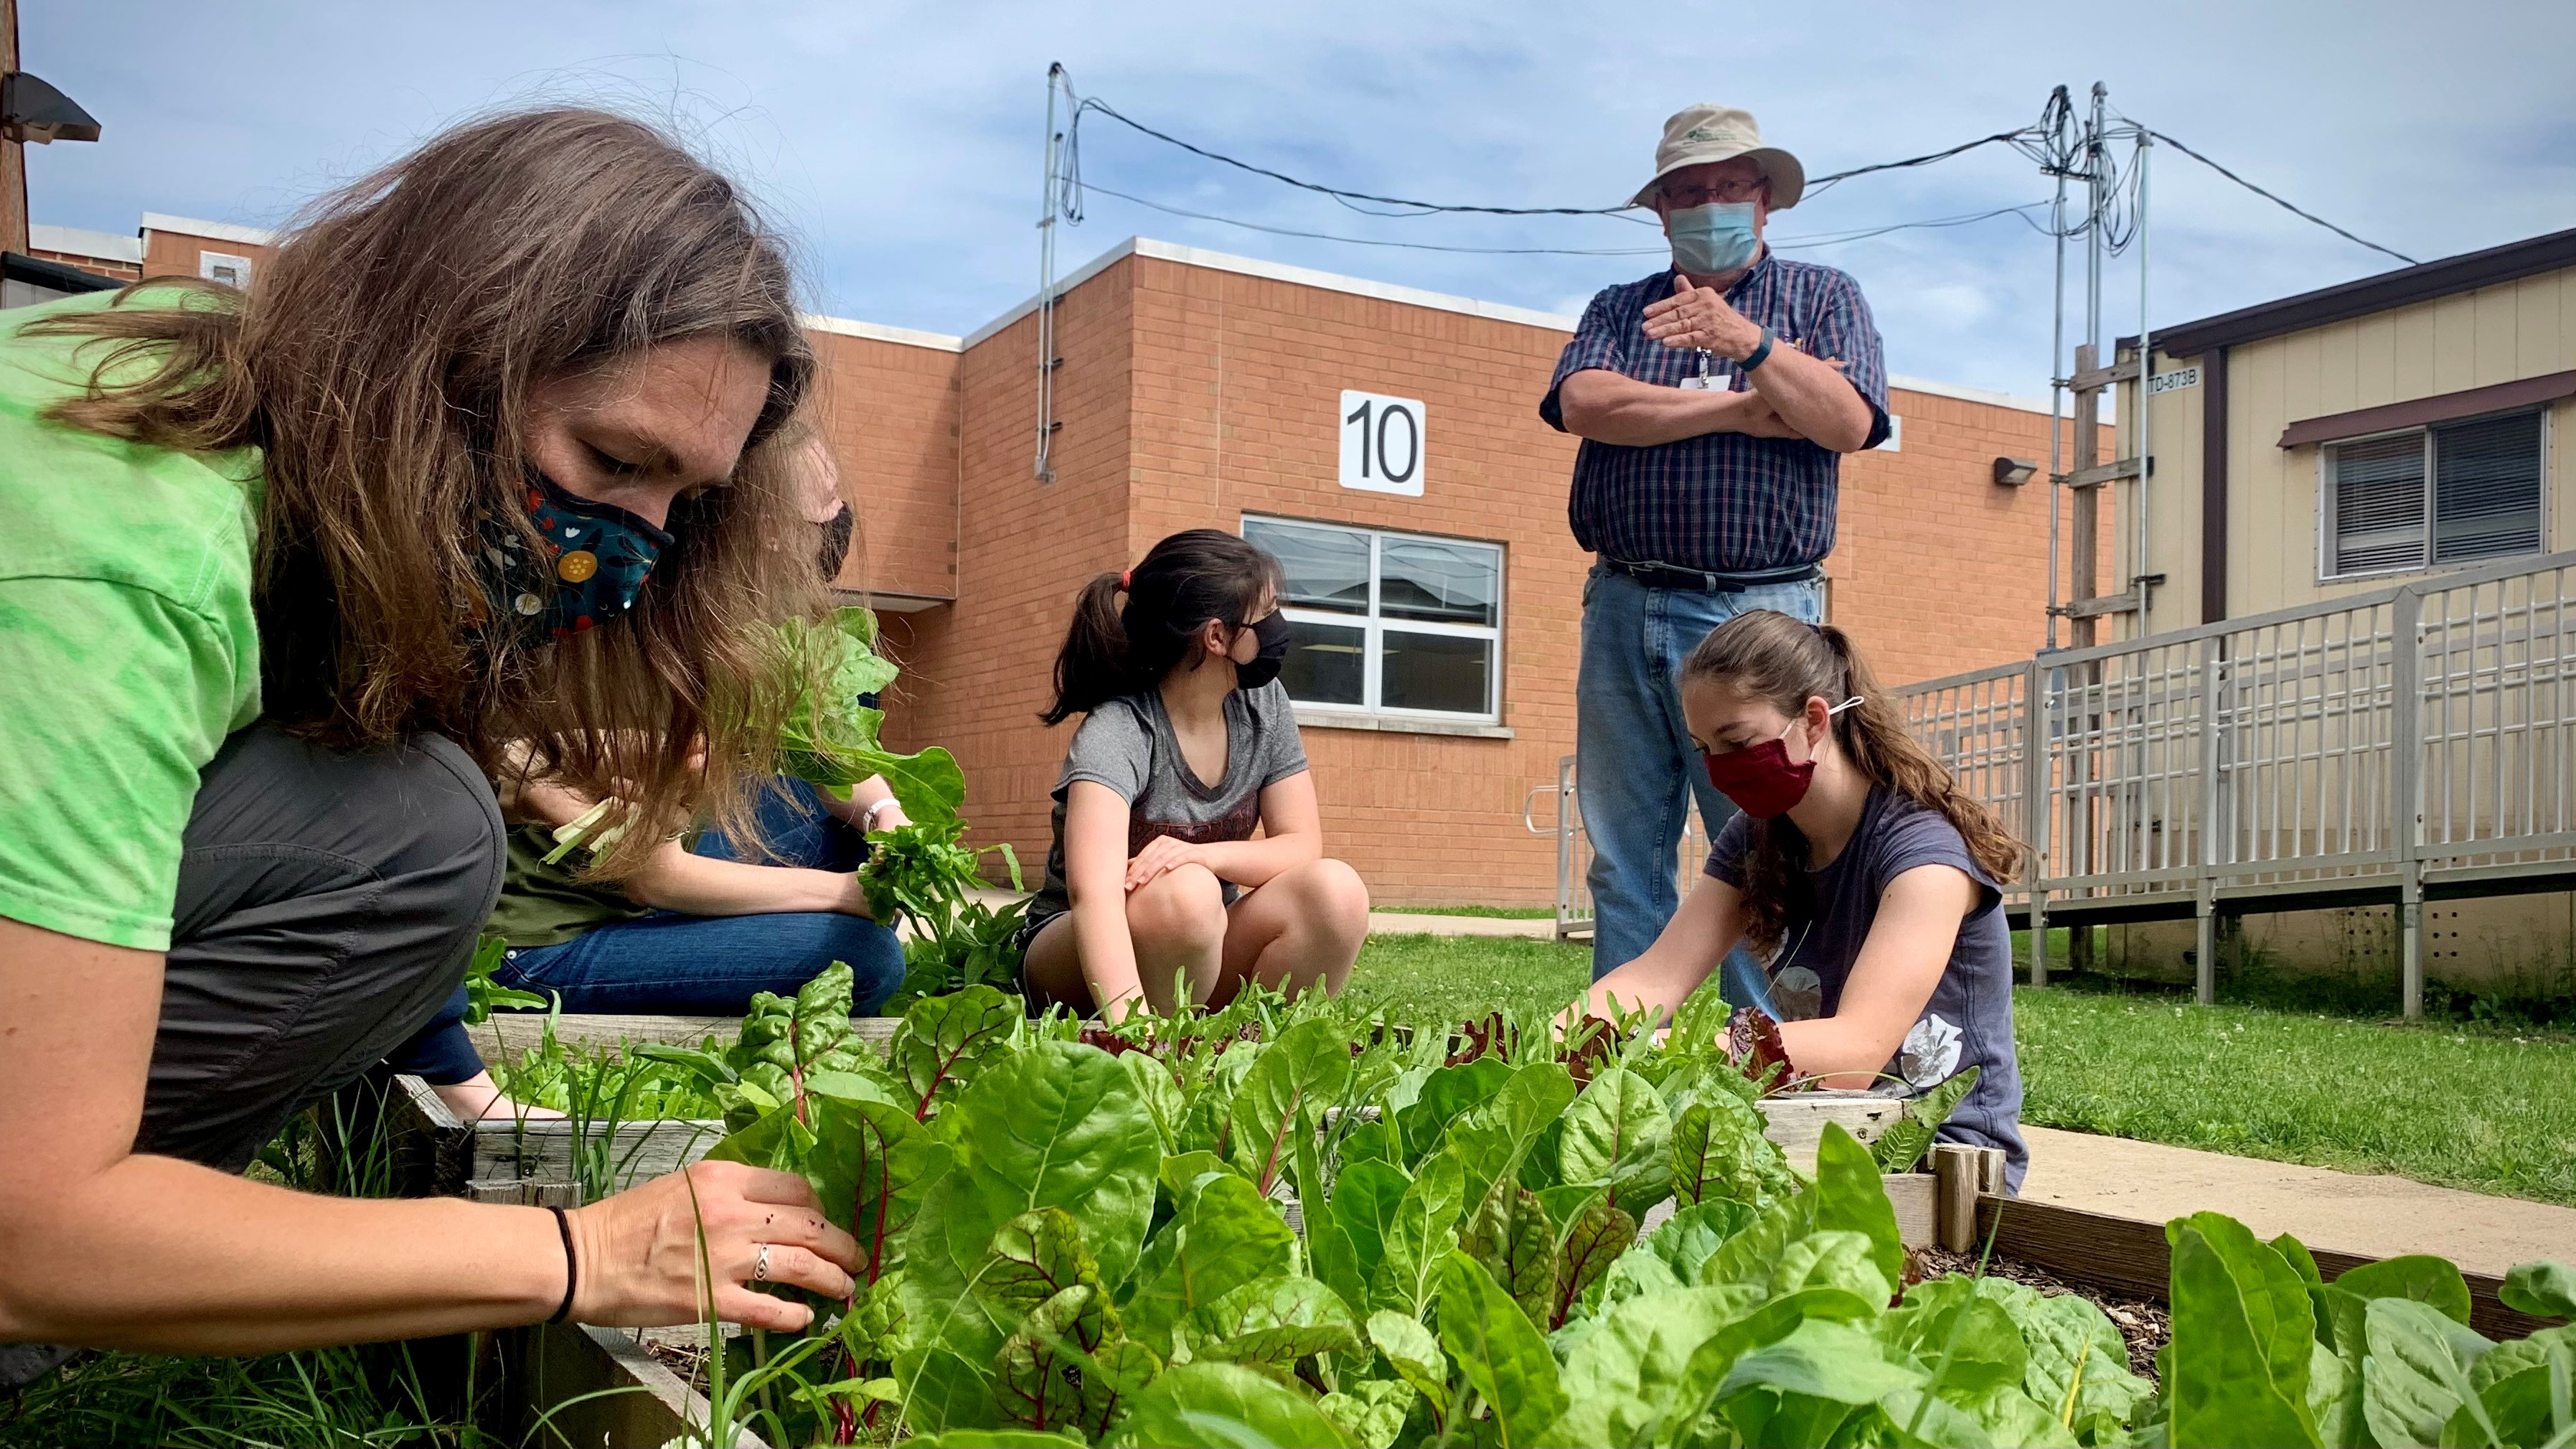 Master Gardener Tony Makara guides students as they weed and harvest.